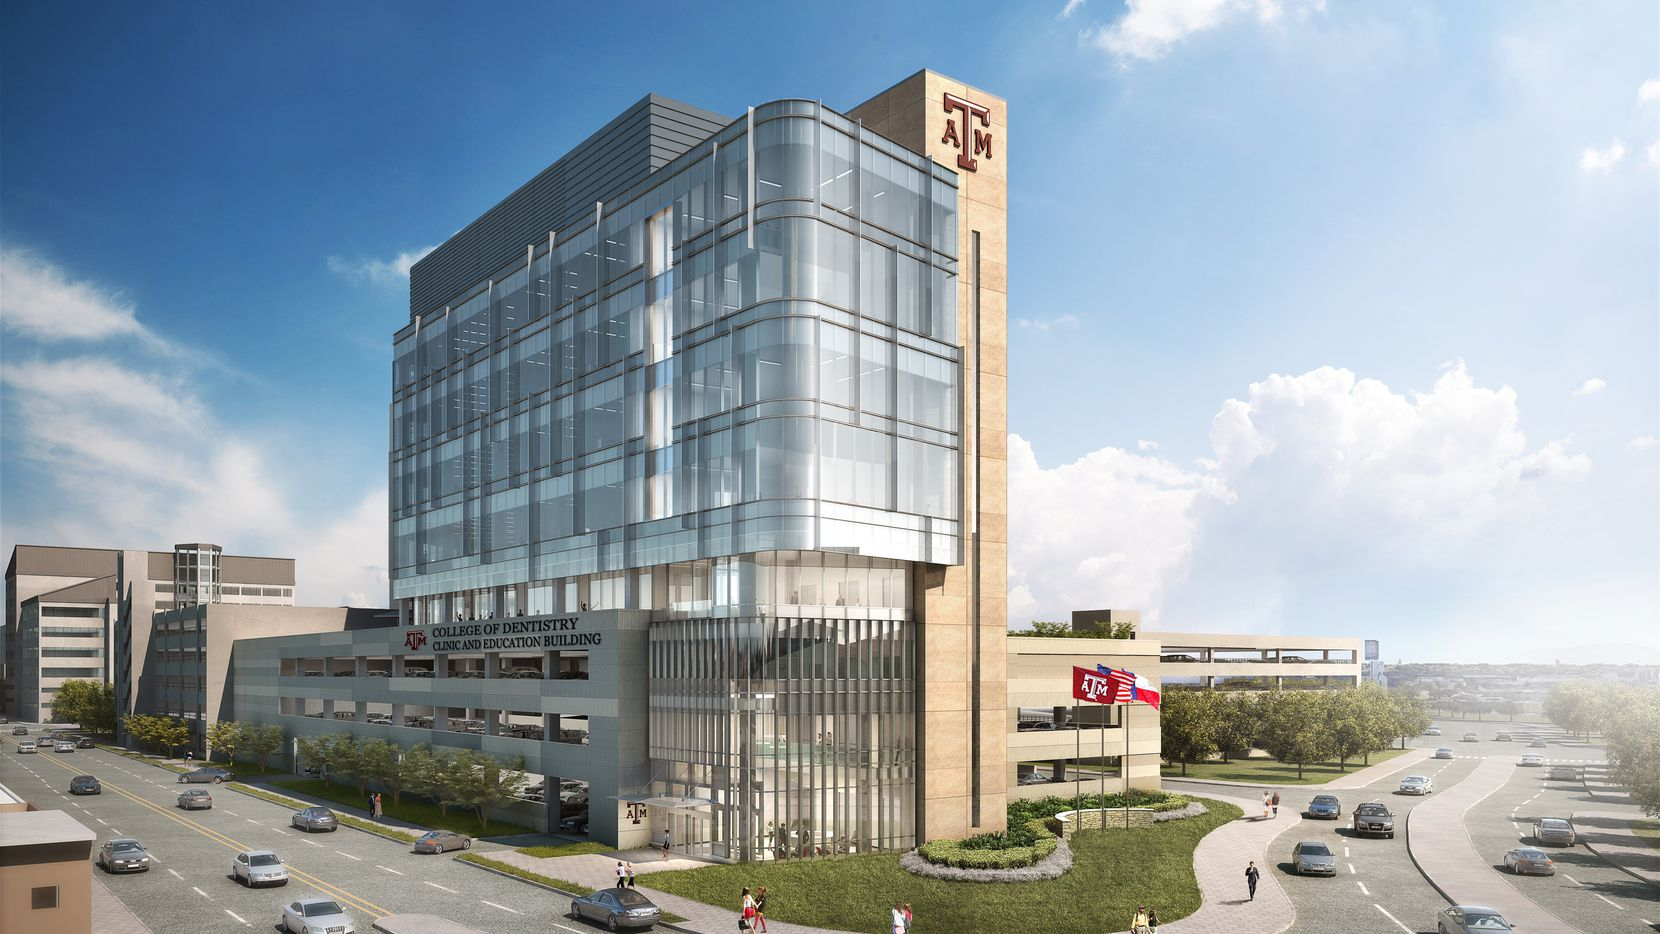 Texas A&M University plans to build a nine-story Clinic and Education building to its dentistry program in Dallas.